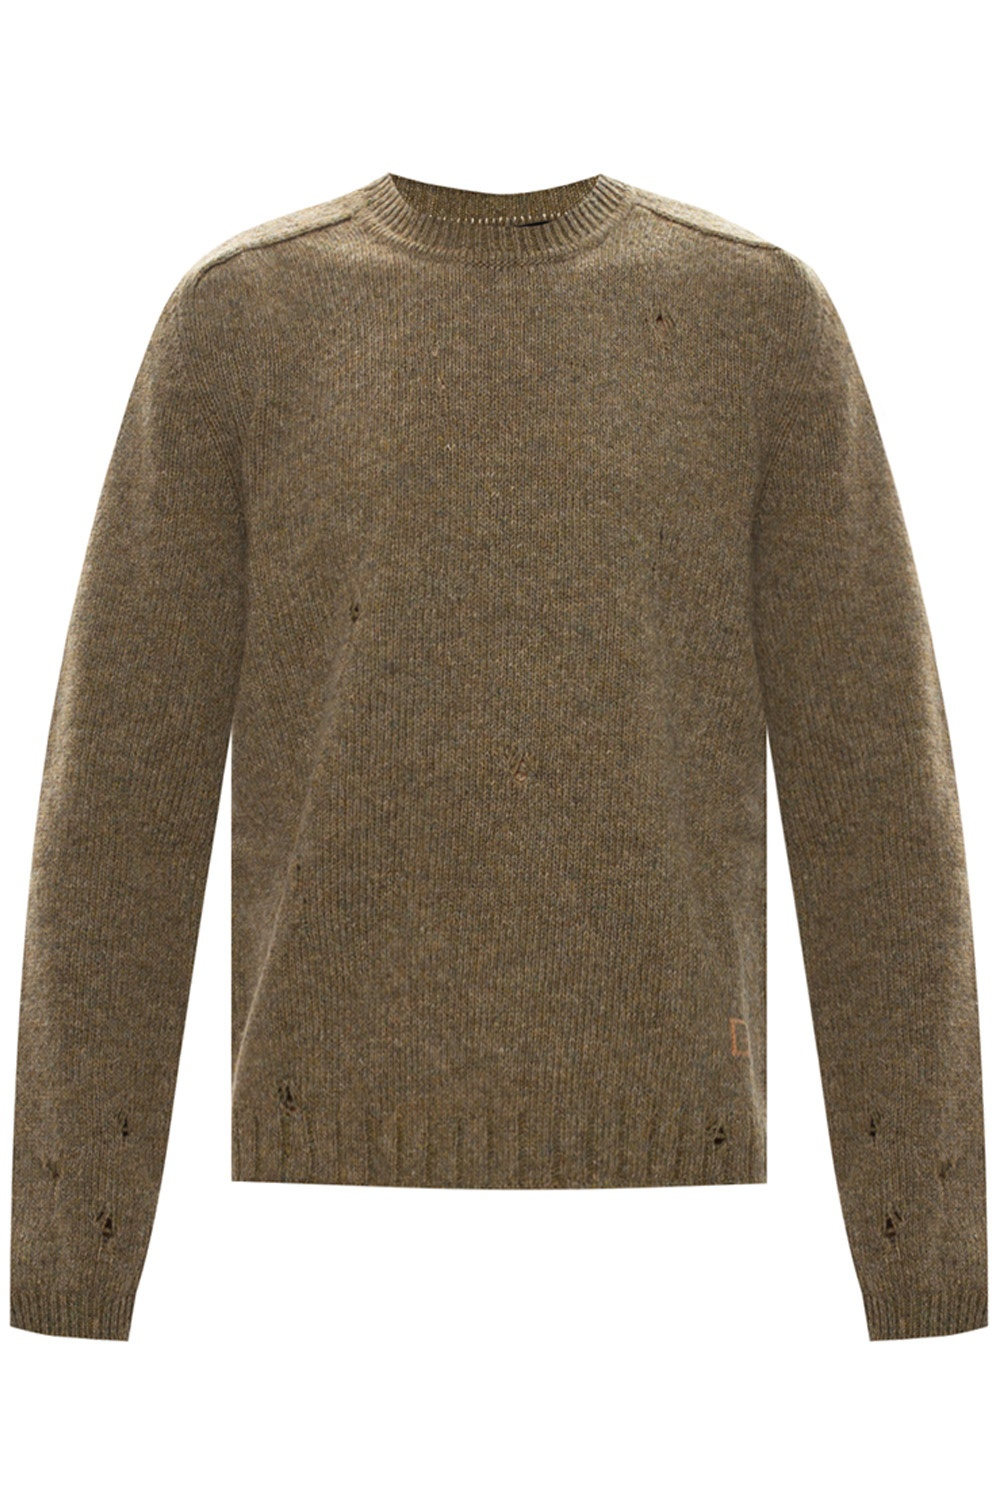 Gucci Sweater with distinctive holes